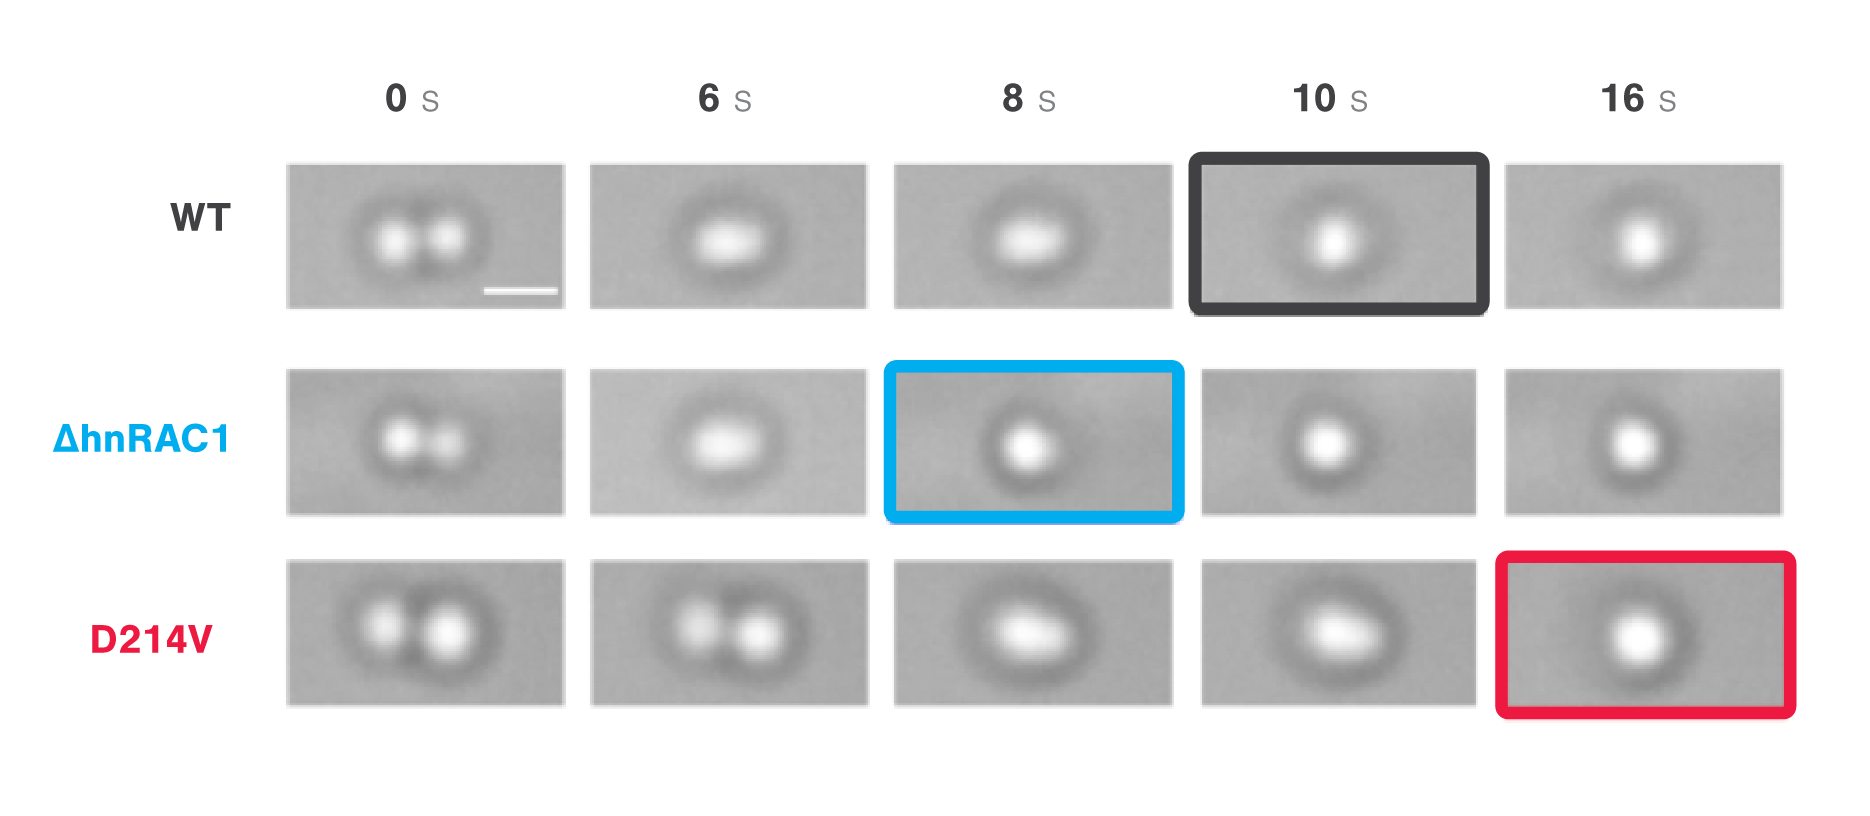 Timelapse images comparing the times to relaxation of protein droplets consisting of wild types during optical tweezer induced droplet fusion v2